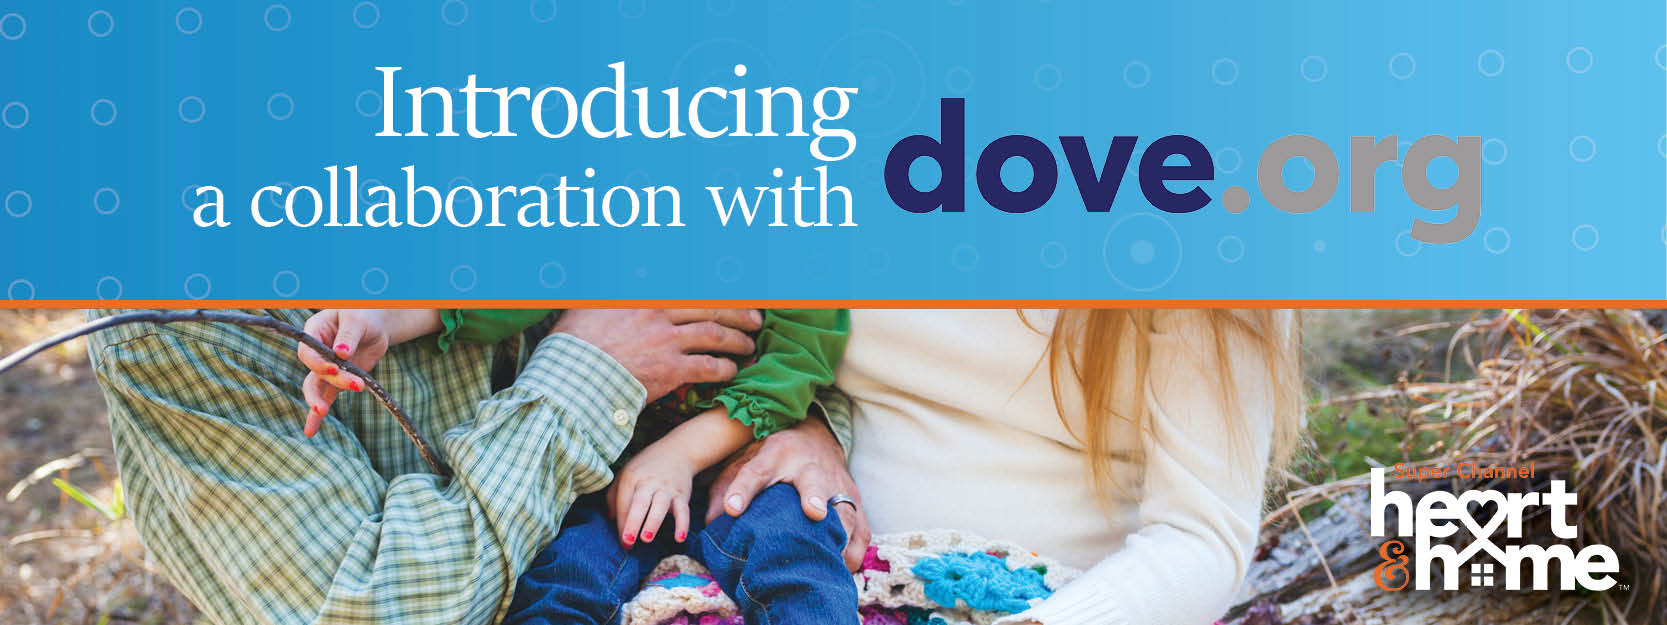 dove dot org collaboration